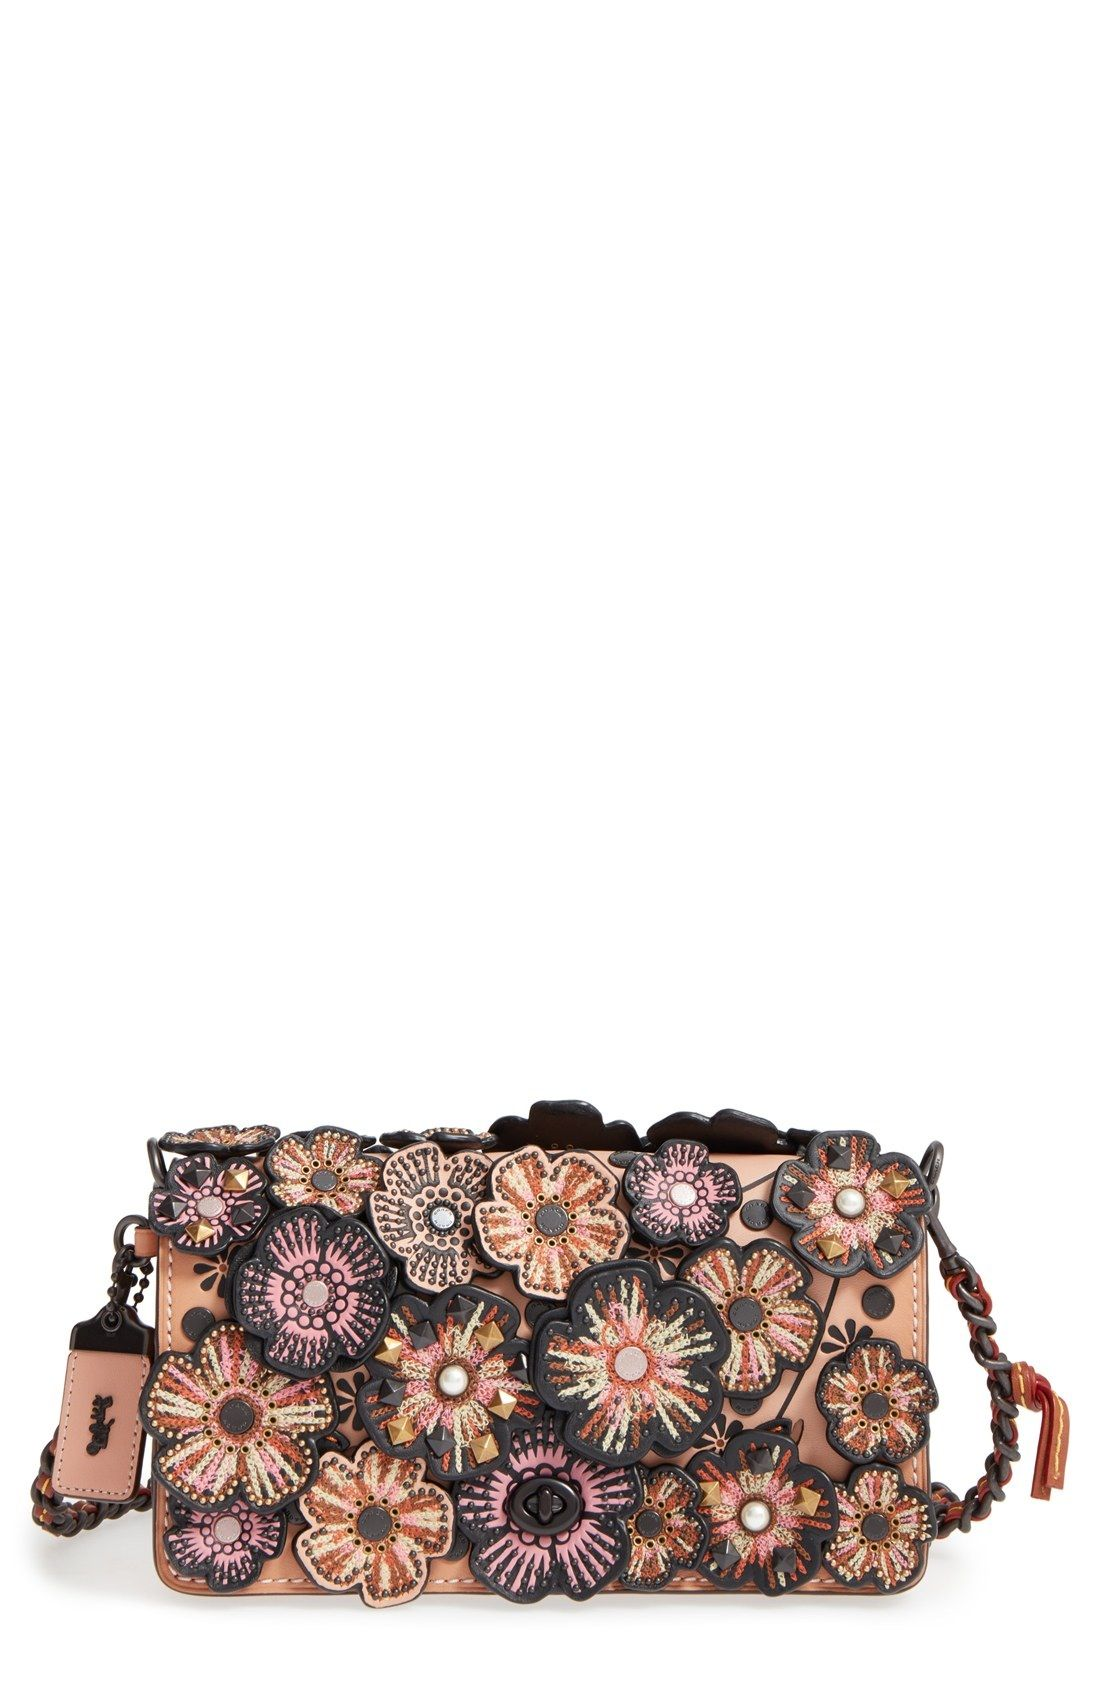 Sac cross-body en cuir à appliqués Dinky BpfShr7Q5F